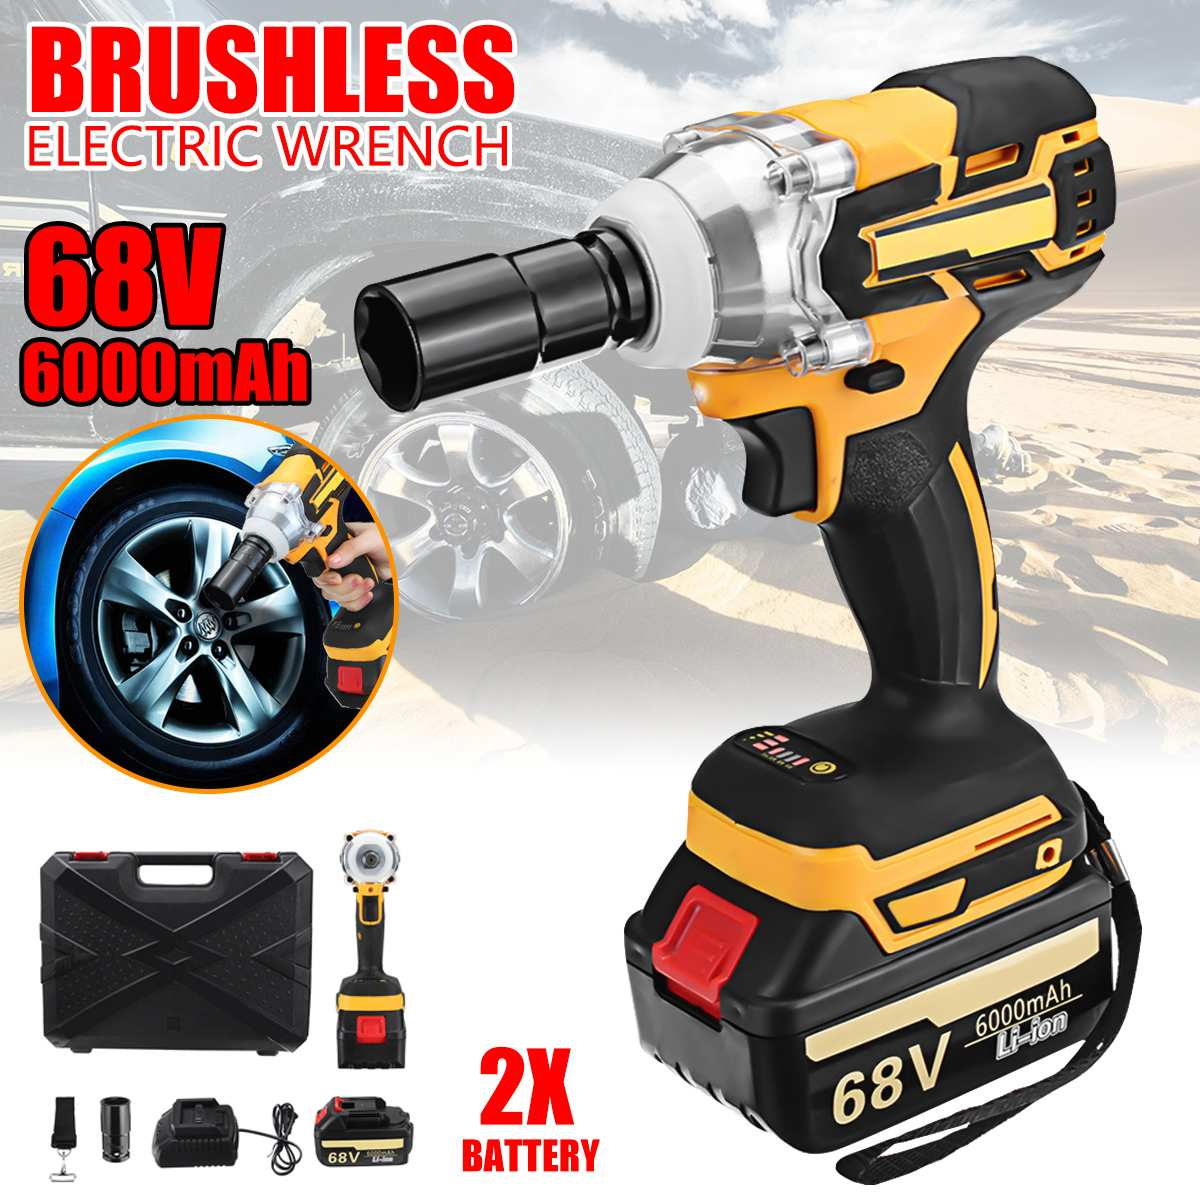 68V 6000mAh Electric Wrench 2 Batteries Brushless Cordless Drive 380 N.M Hand Drill Household Car Socket Electric Impact Wrench68V 6000mAh Electric Wrench 2 Batteries Brushless Cordless Drive 380 N.M Hand Drill Household Car Socket Electric Impact Wrench